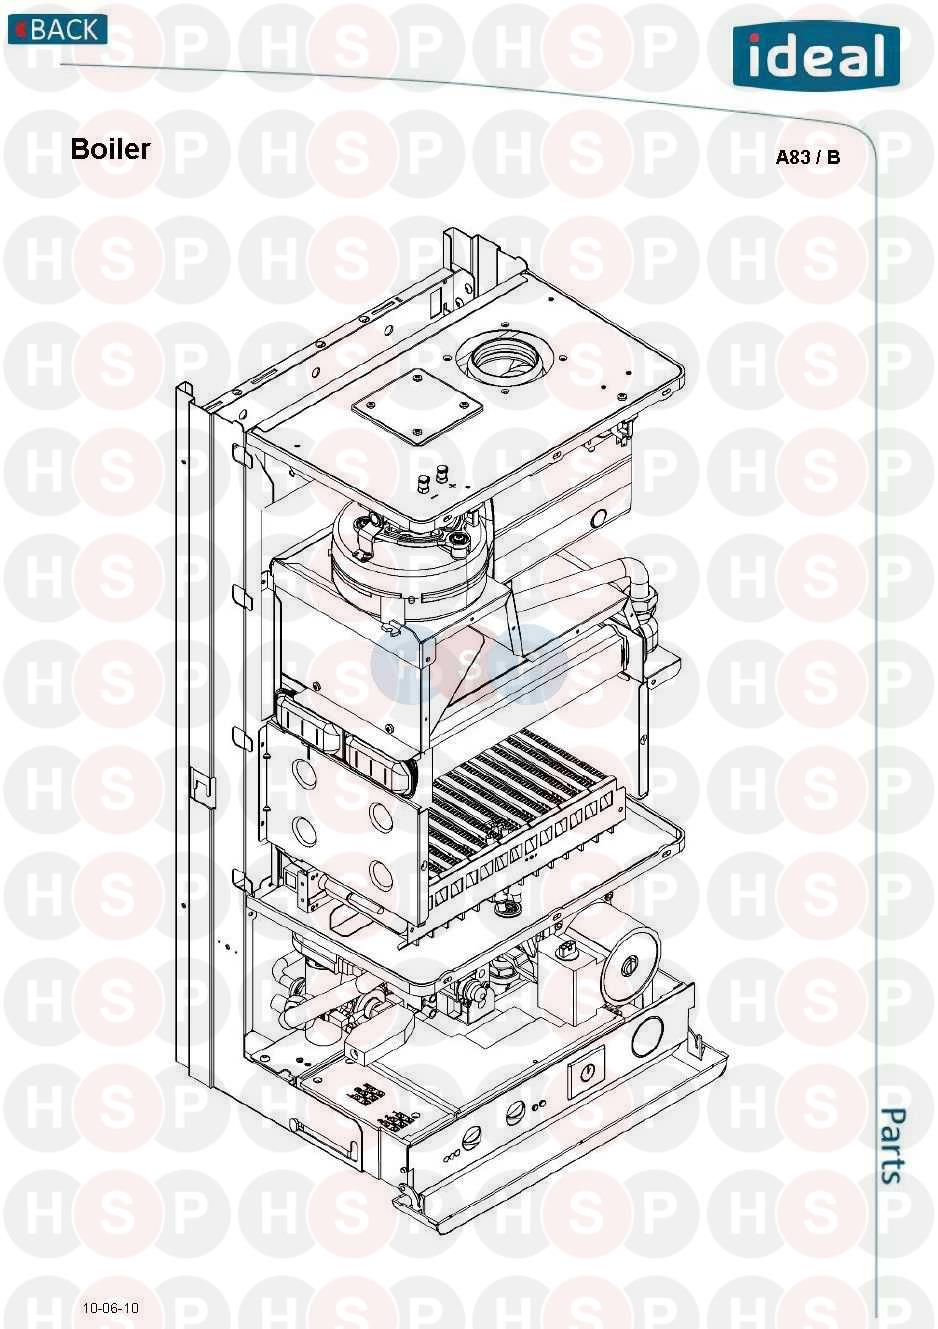 ideal mini he c28  boiler  diagram